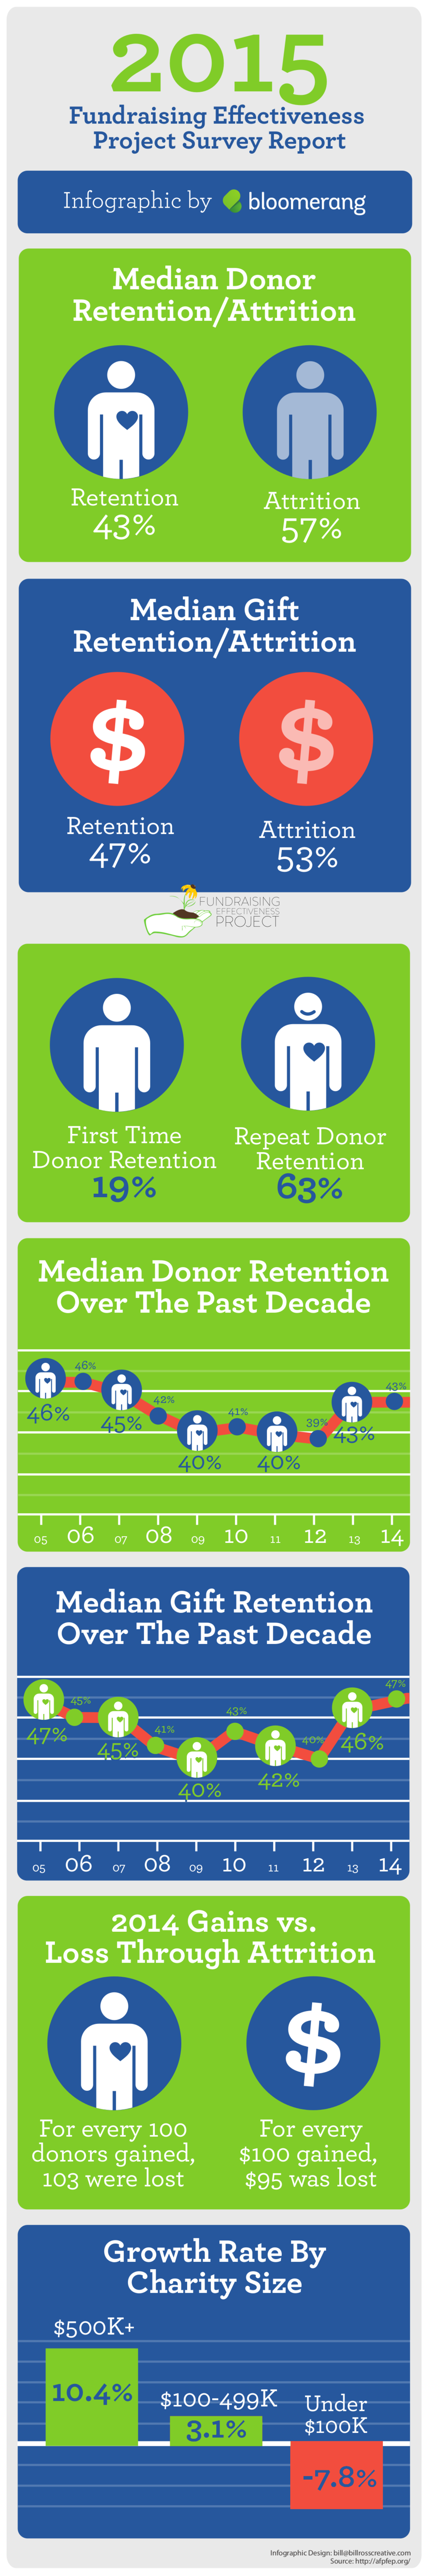 2015 Fundraising Effectiveness Project Survey Report [Infographic]